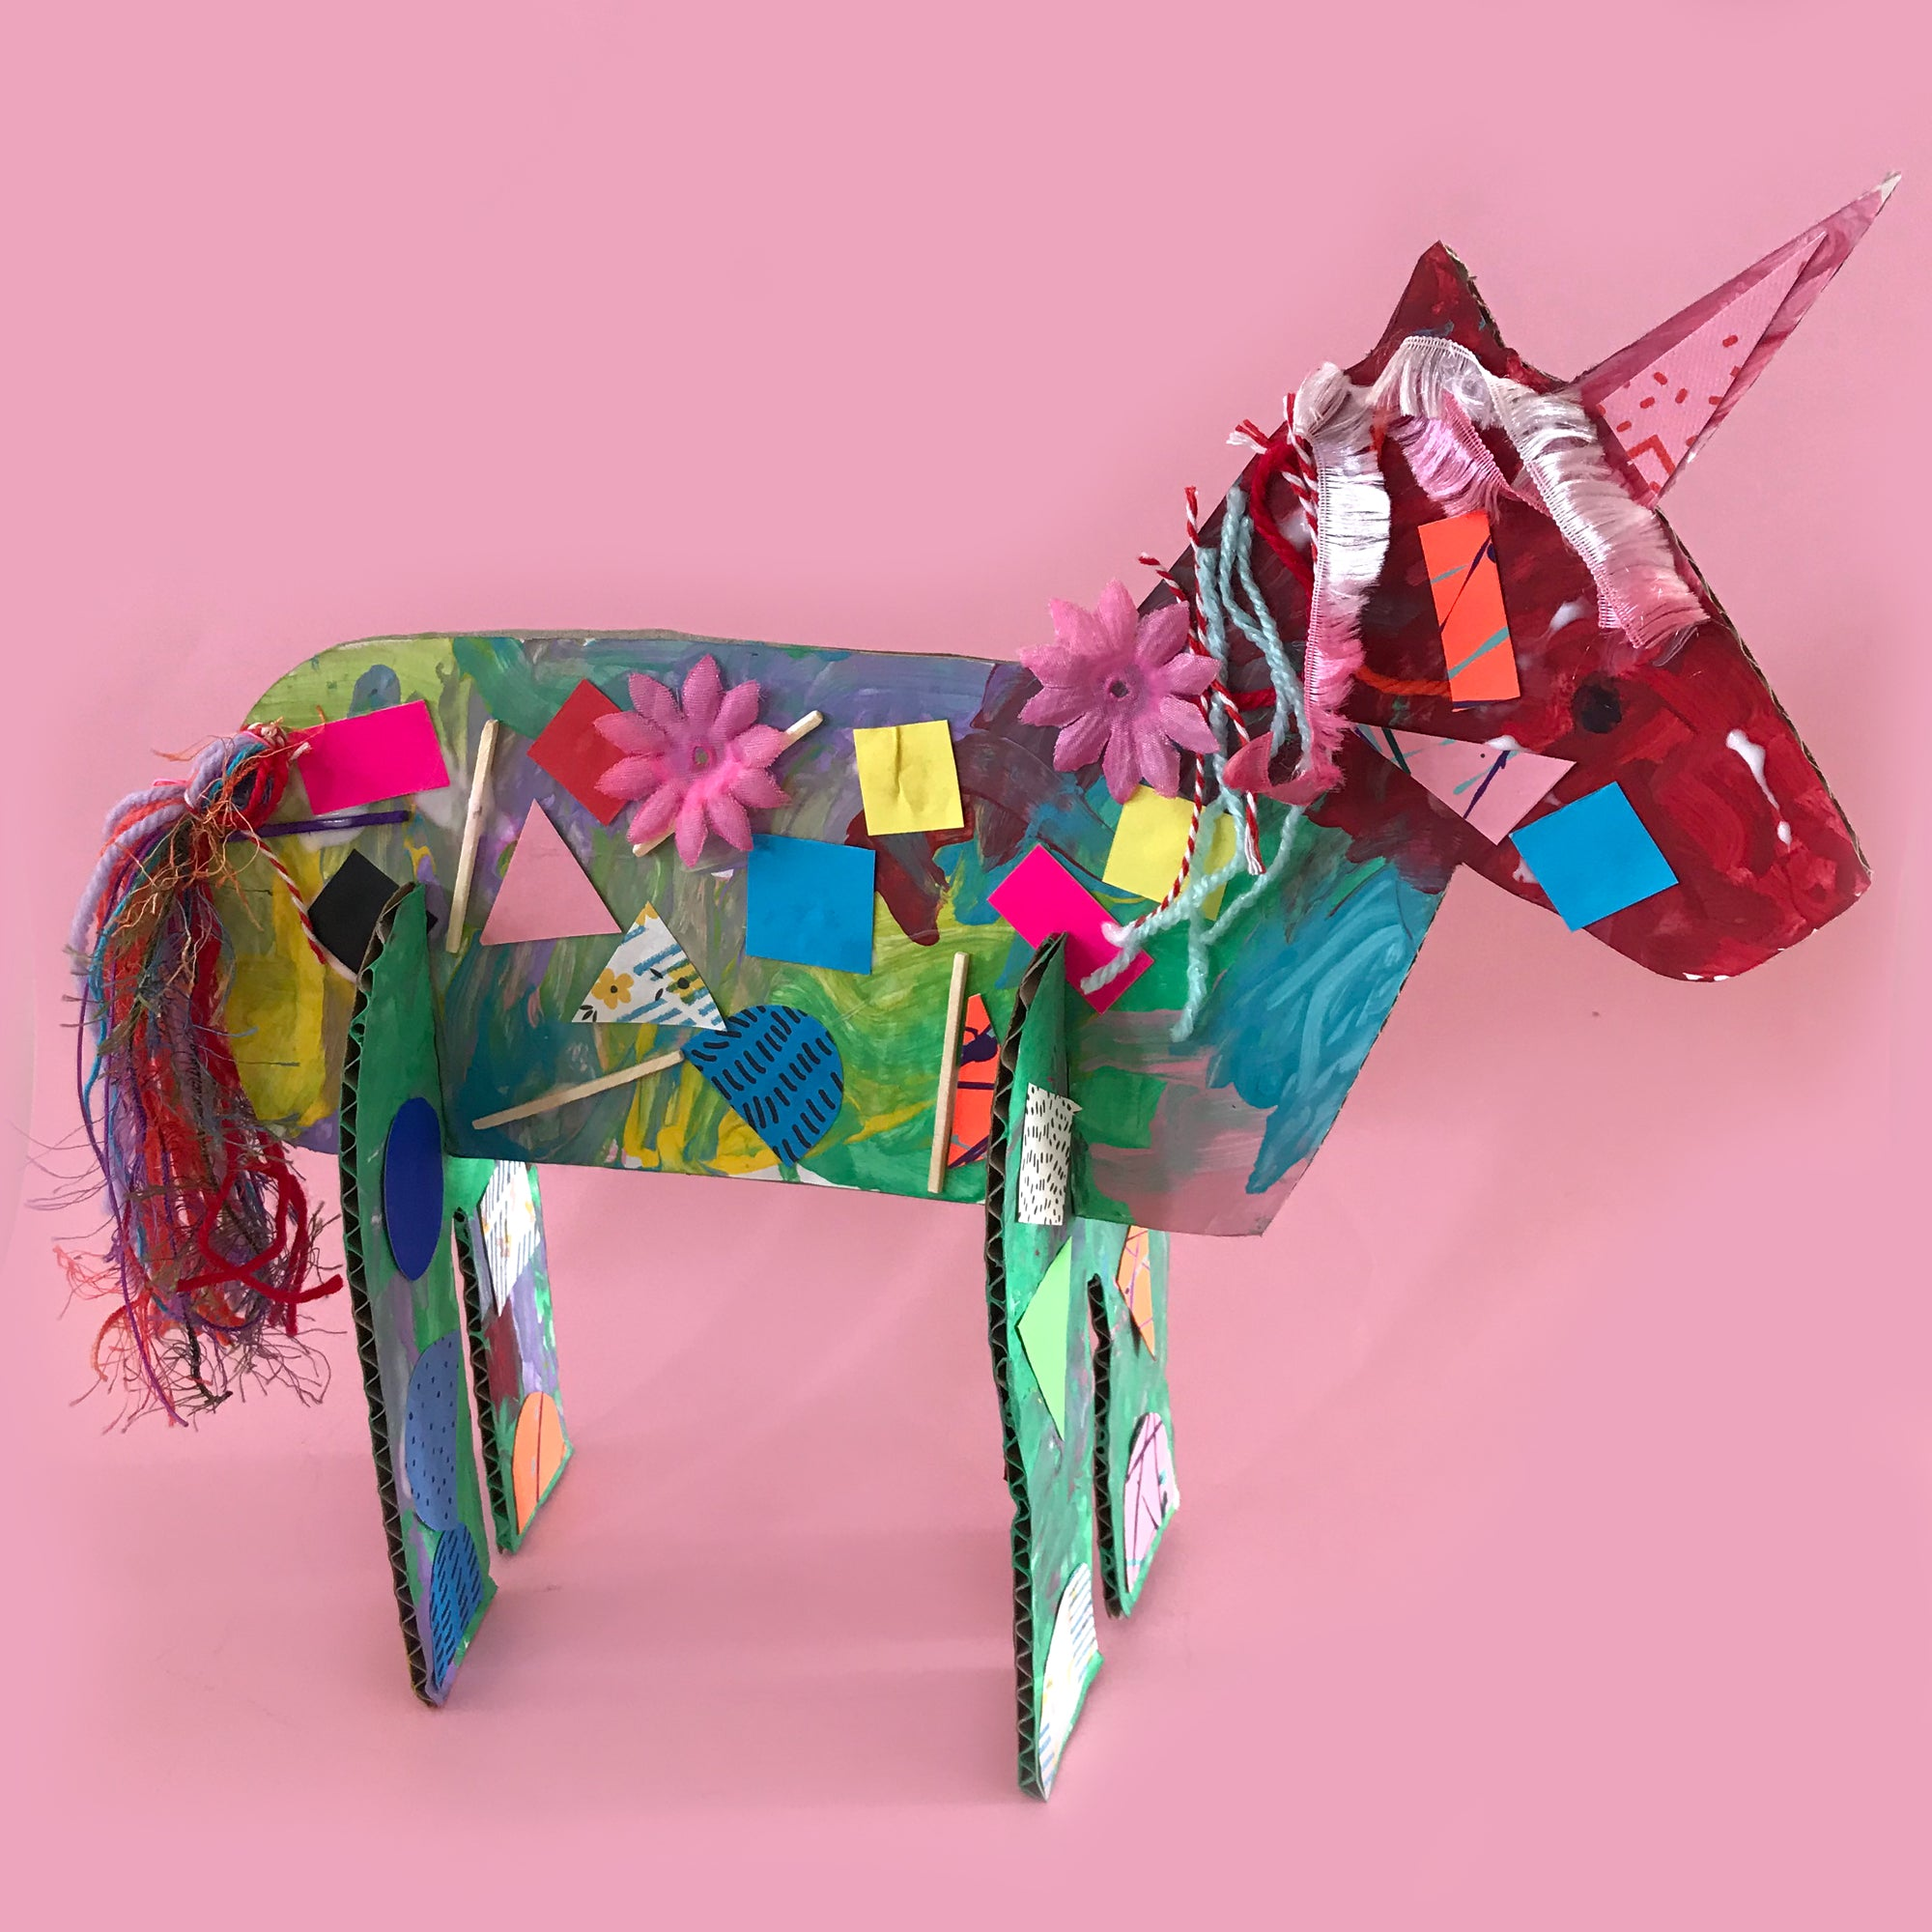 Collage unicorn kids craft activity